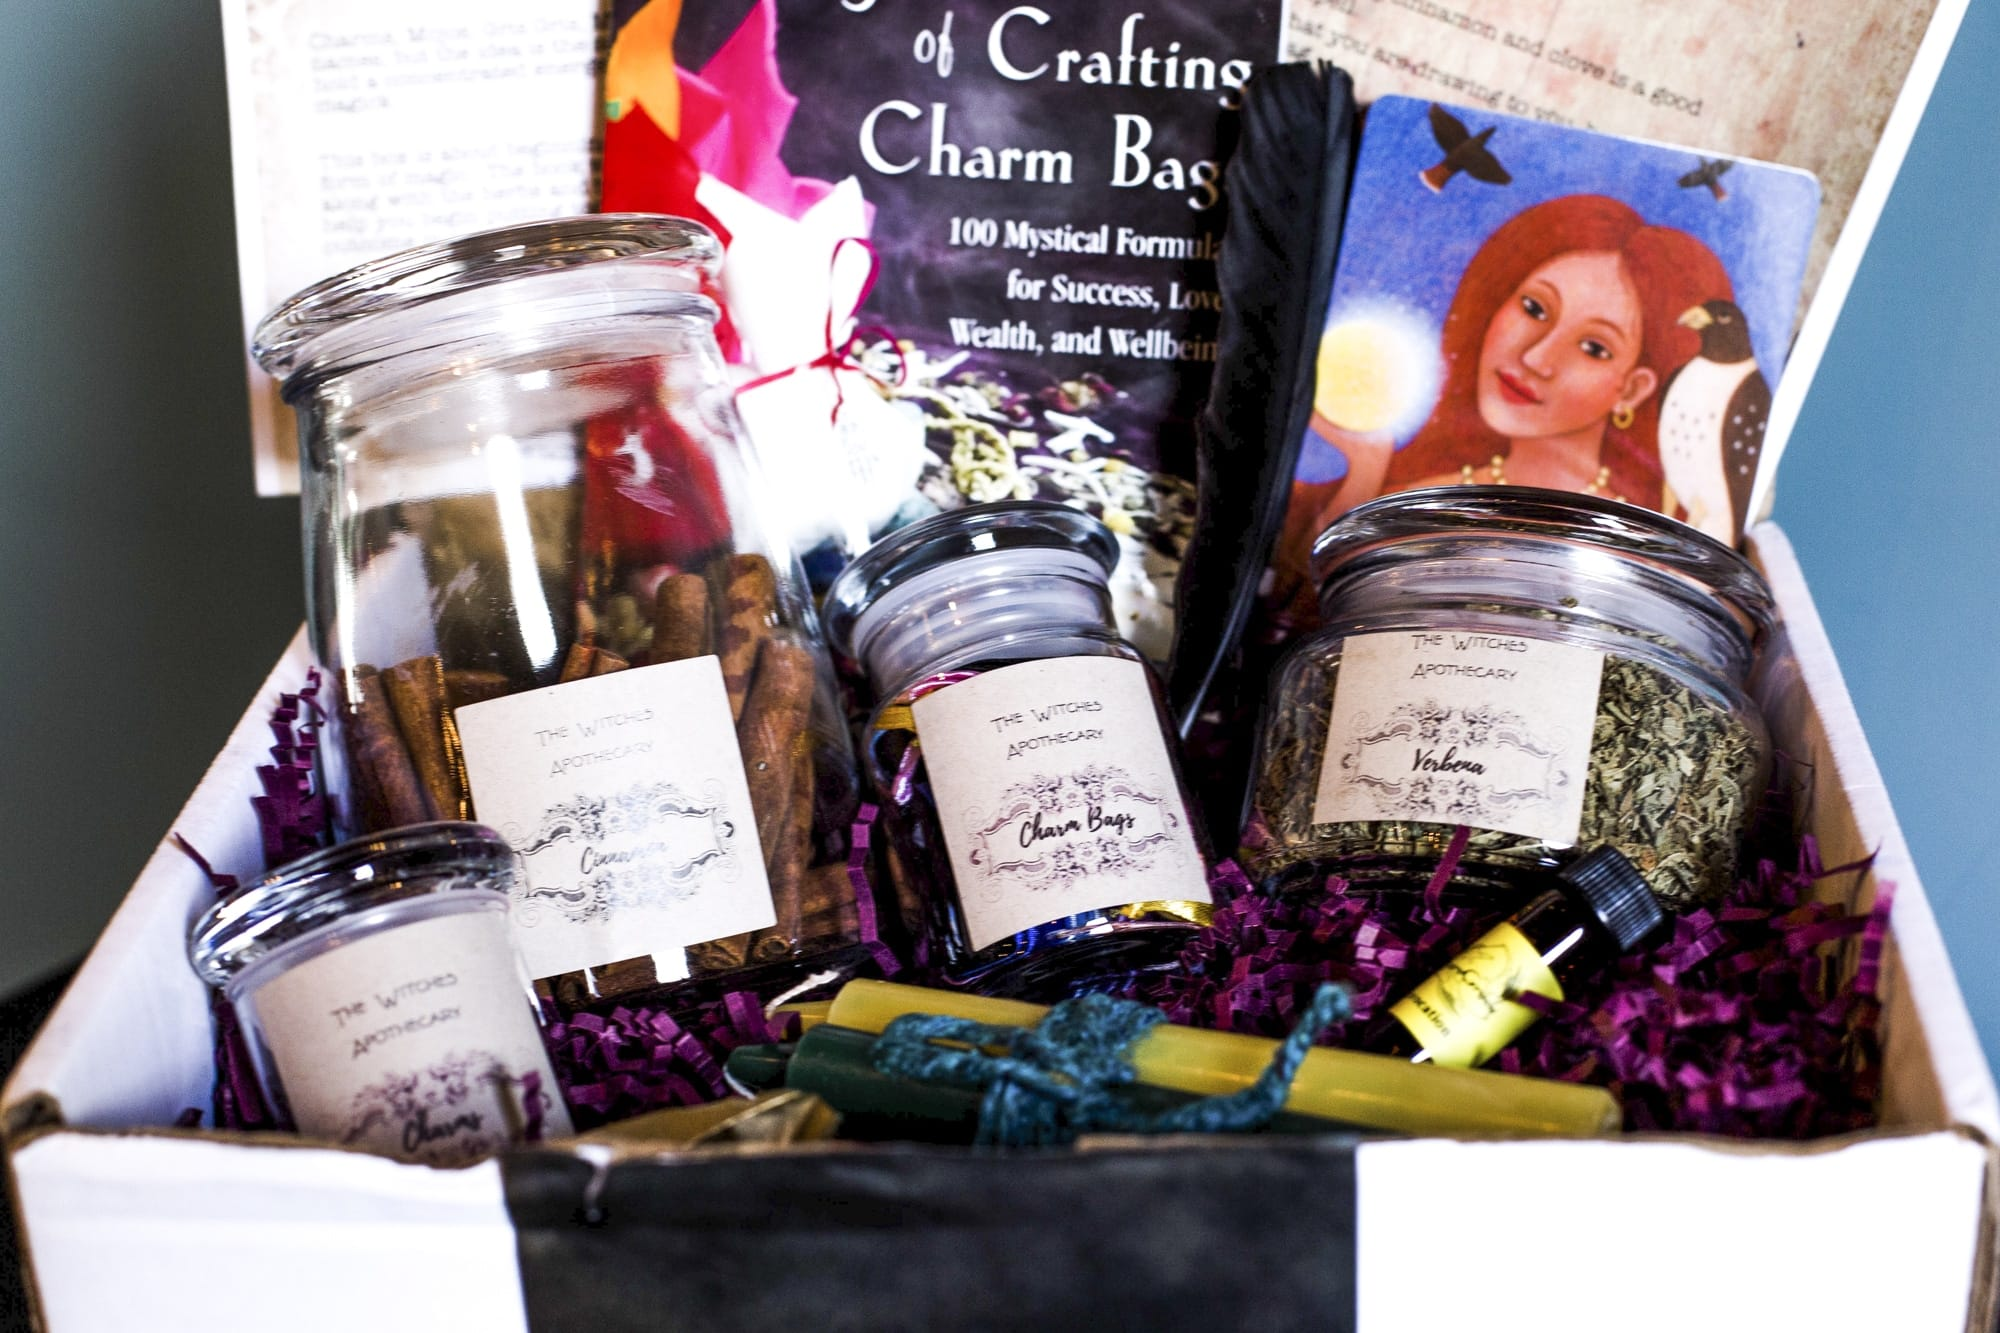 The July 2018 Witches Box: Charm Bag Magick - The Witches Box